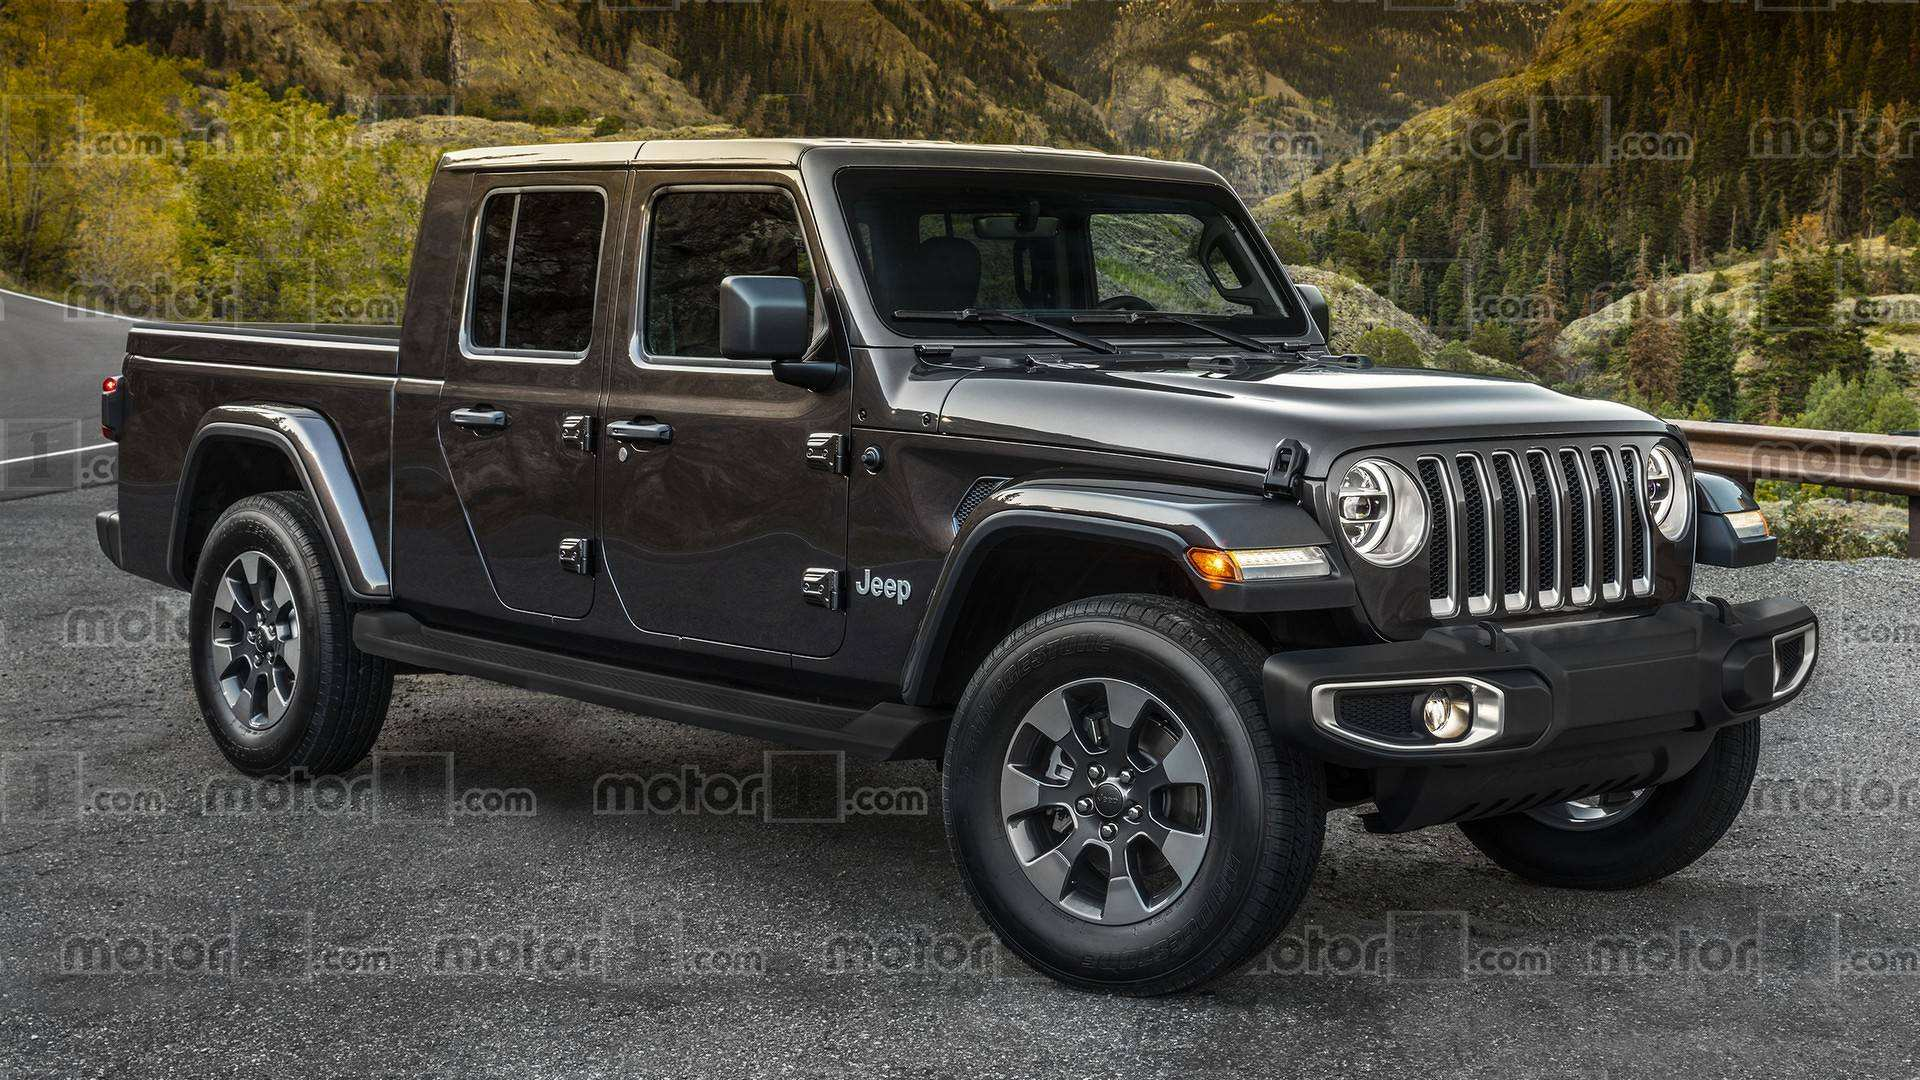 30 All New 2019 Jeep Gladiator Concept